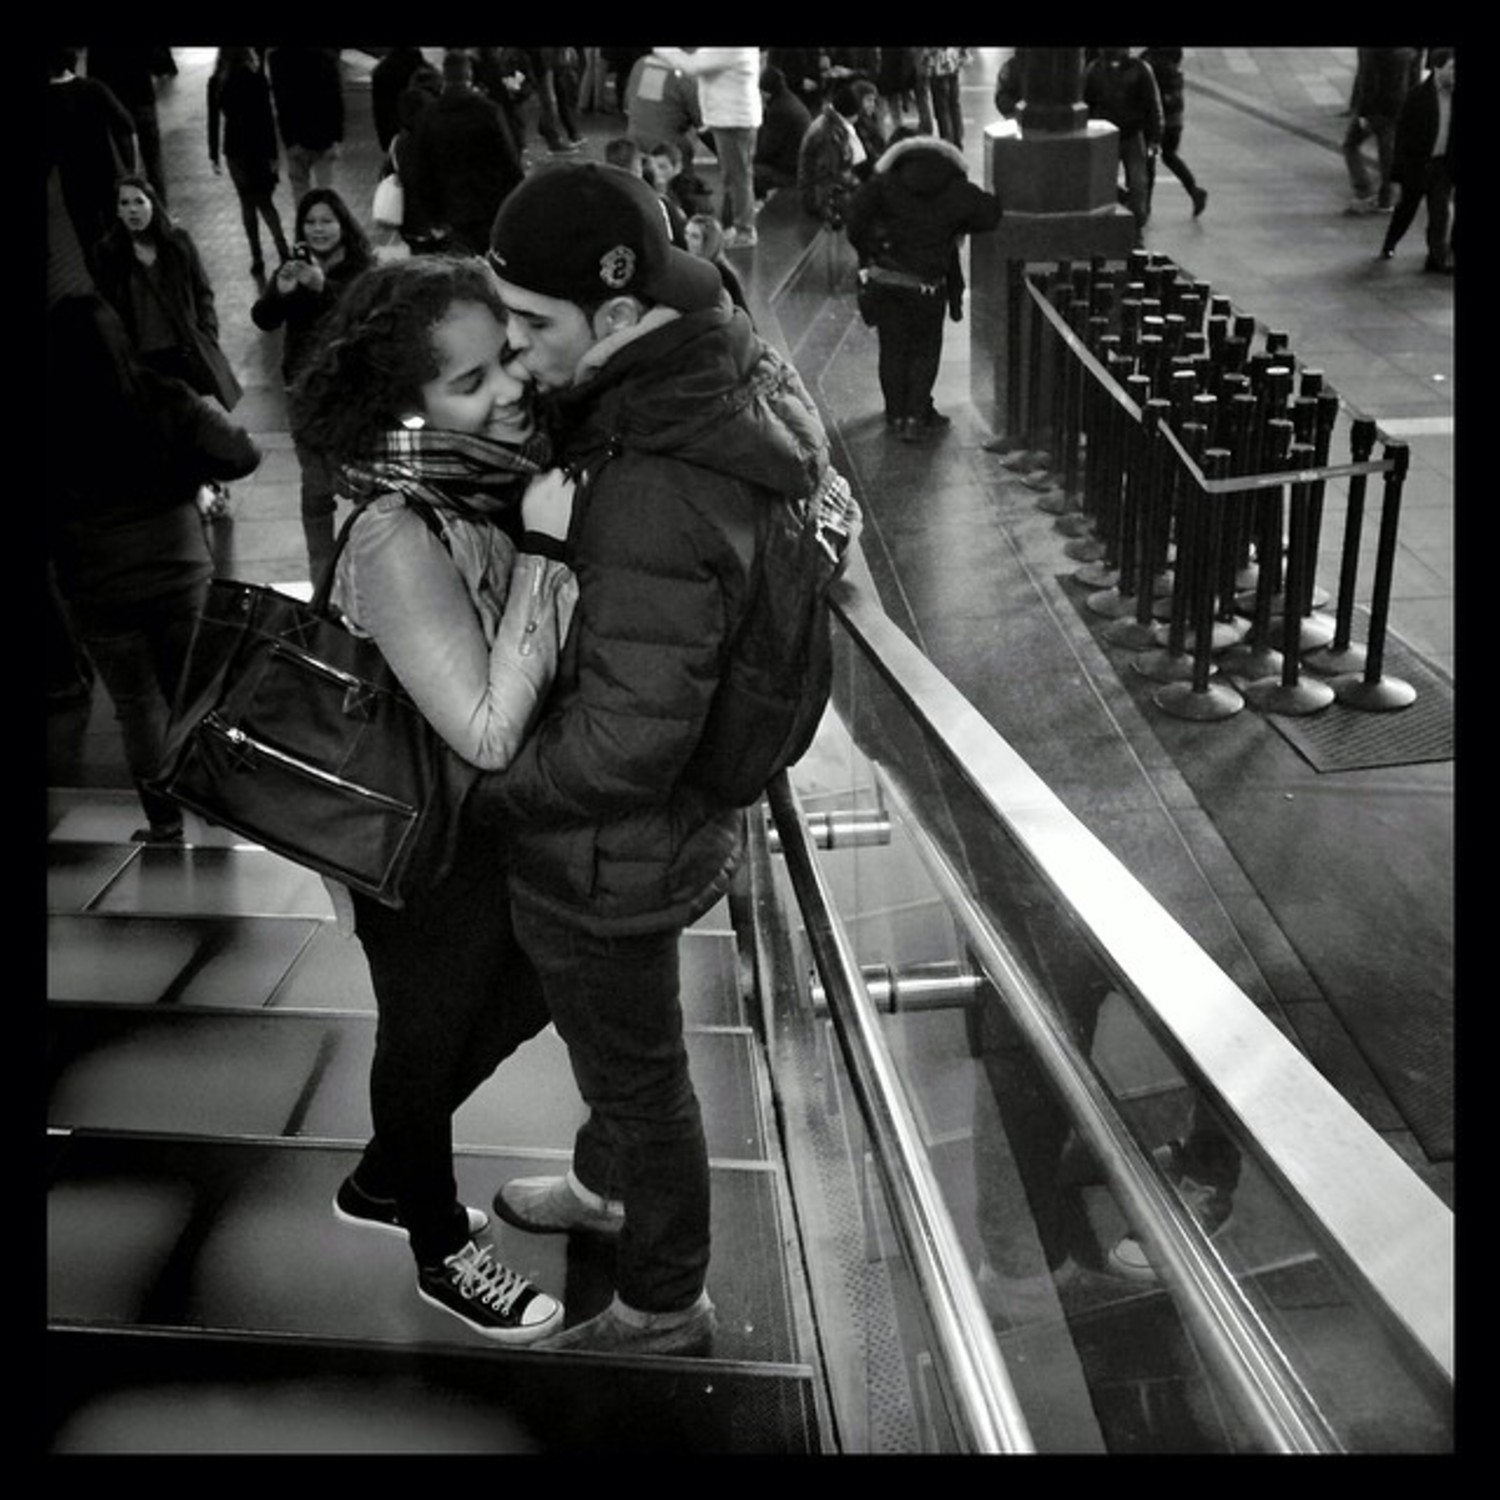 #younglove #nyc